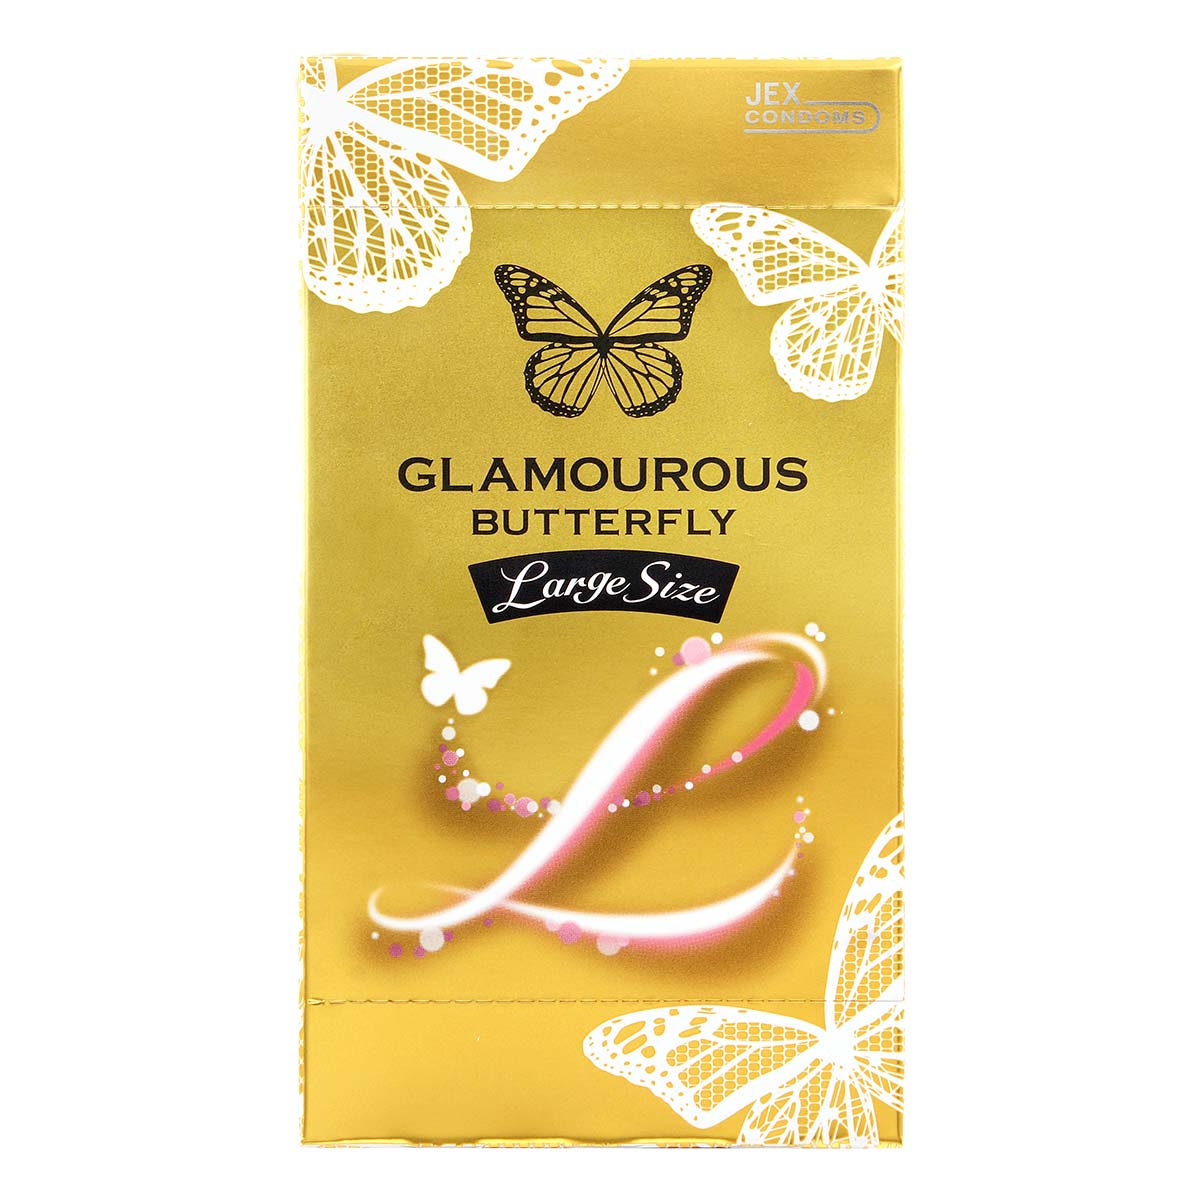 Glamourous Butterfly Large Size 55mm 6's Pack Latex Condom